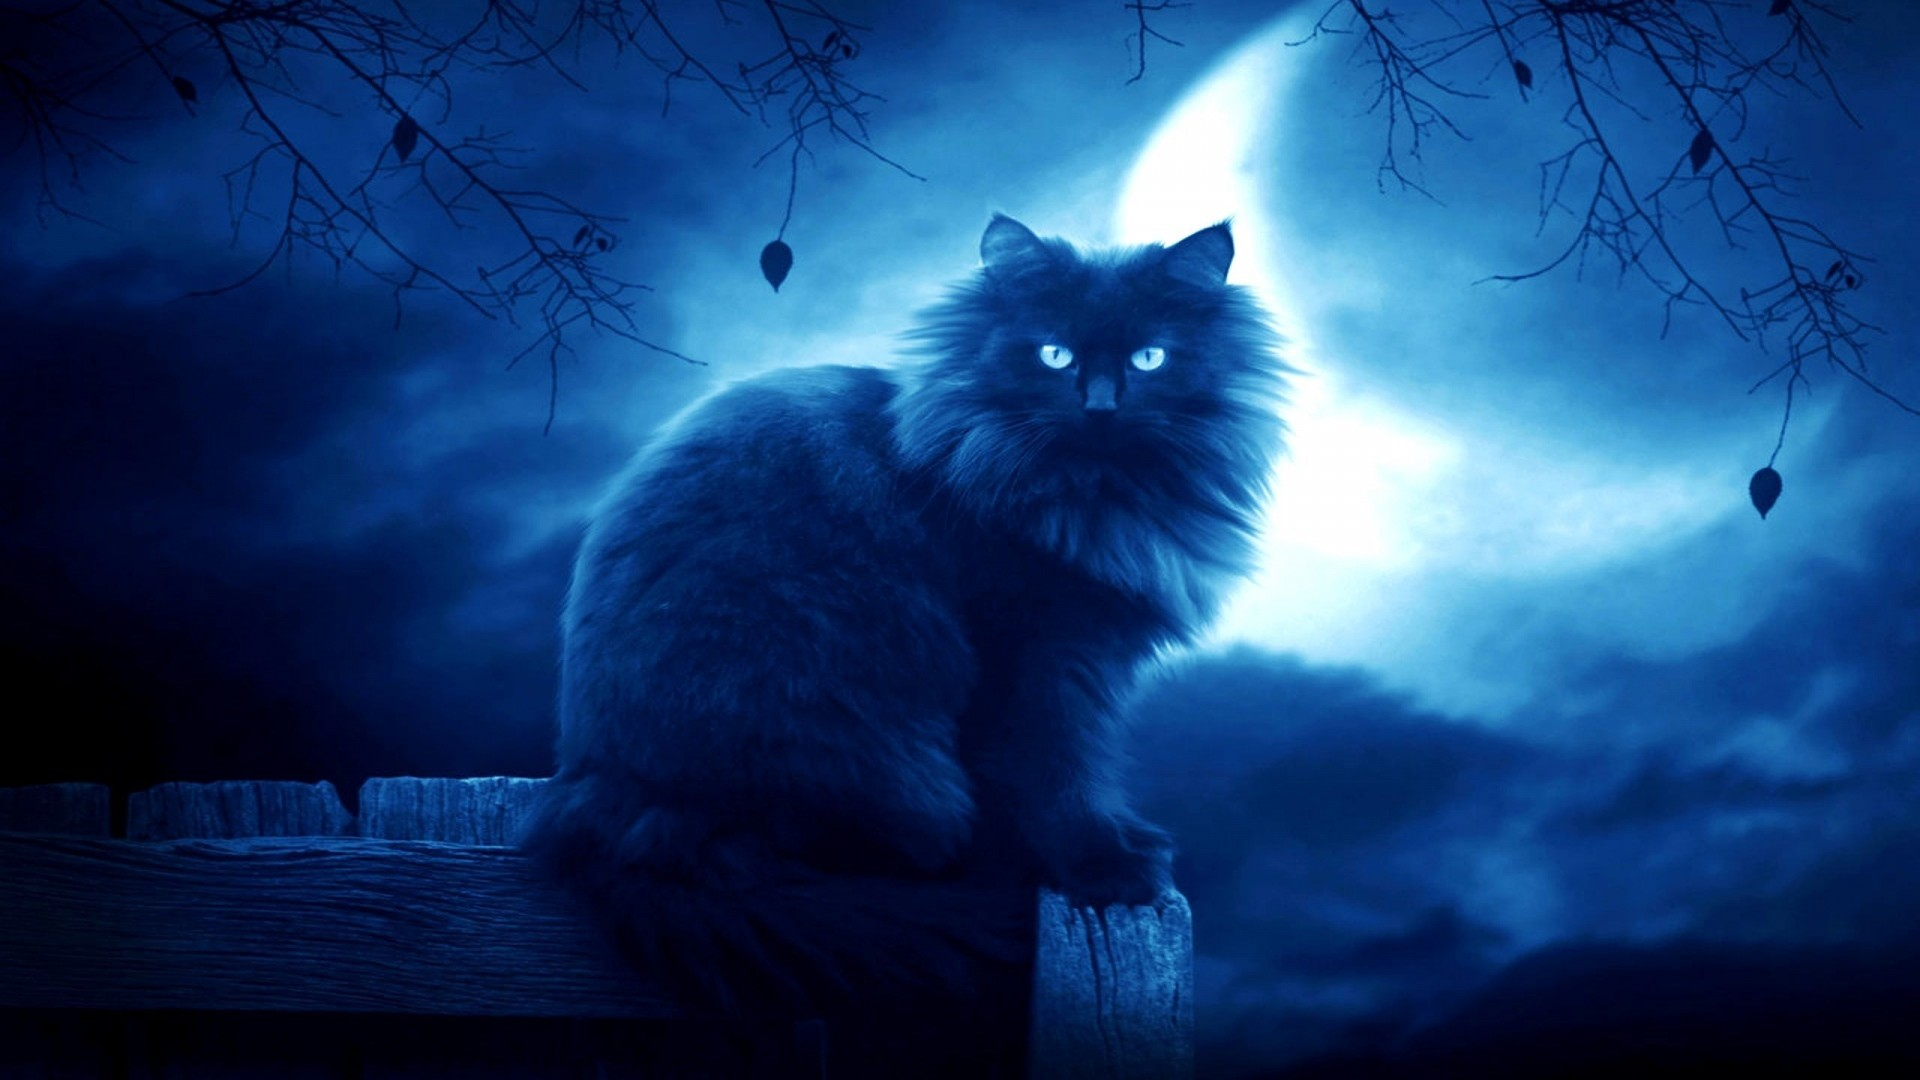 Wallpaper cat, black, moon, night, silhouette, outlines